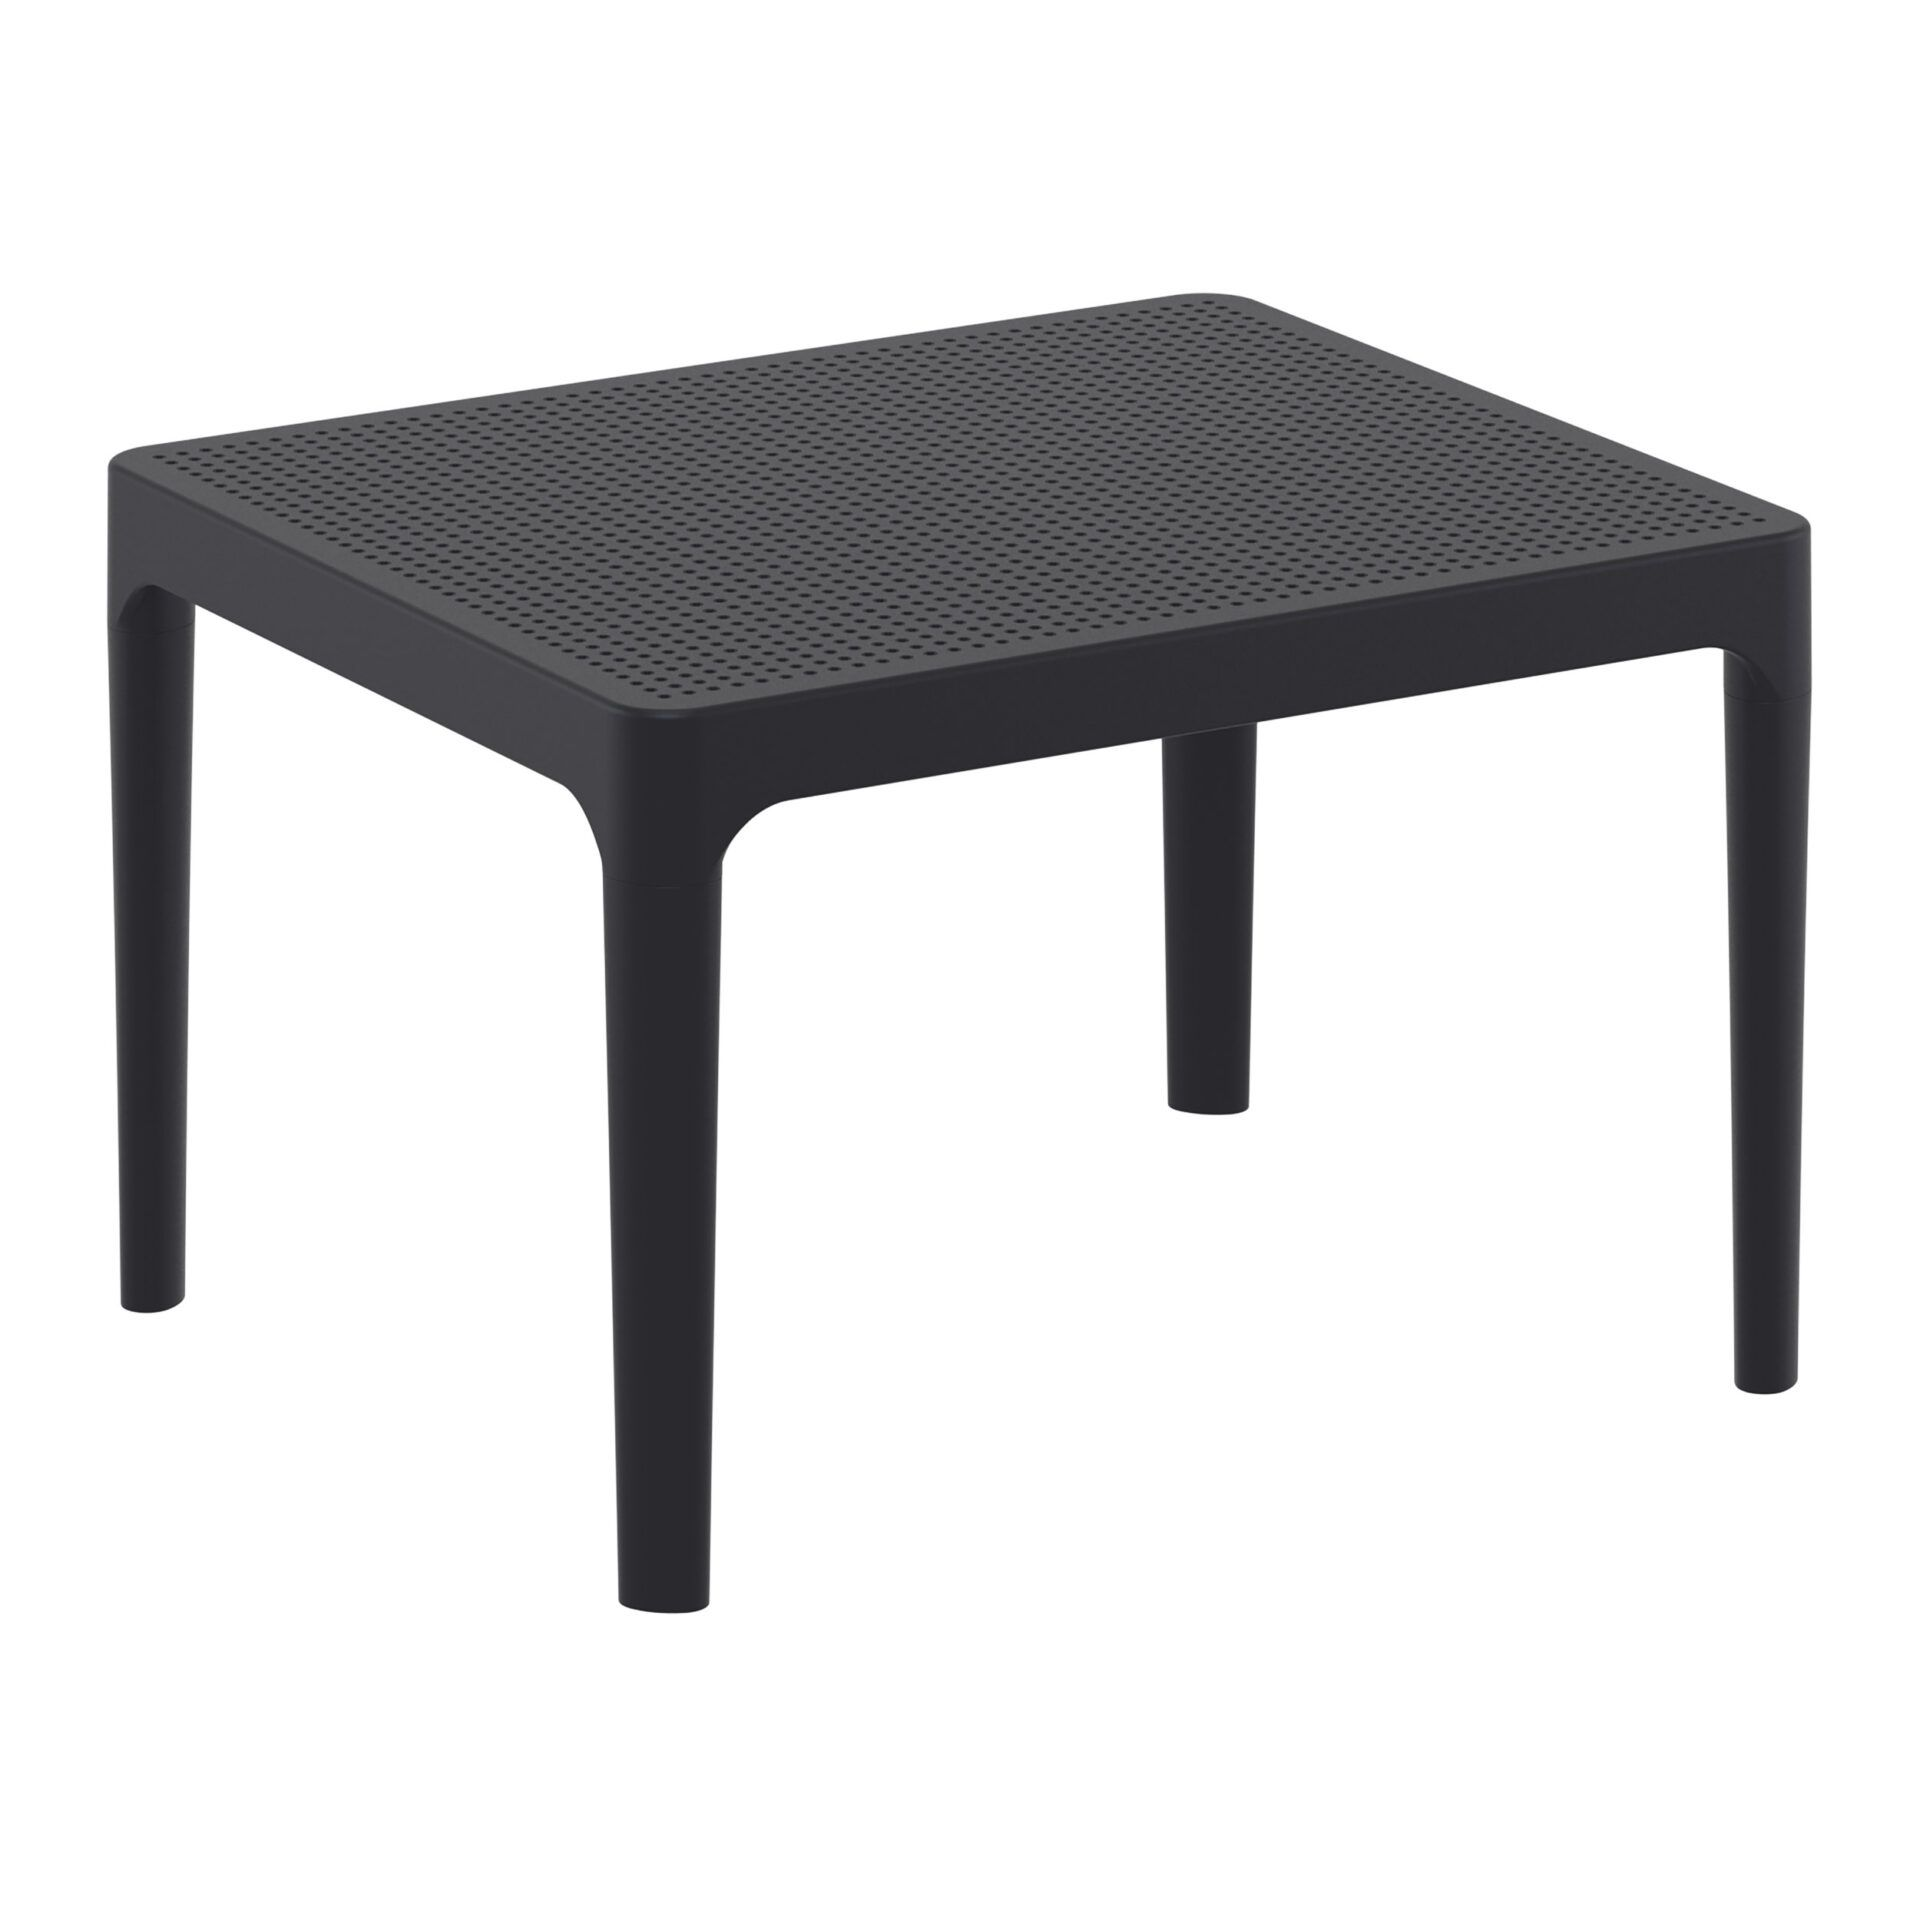 polypropylene outdoor sky side table black front side